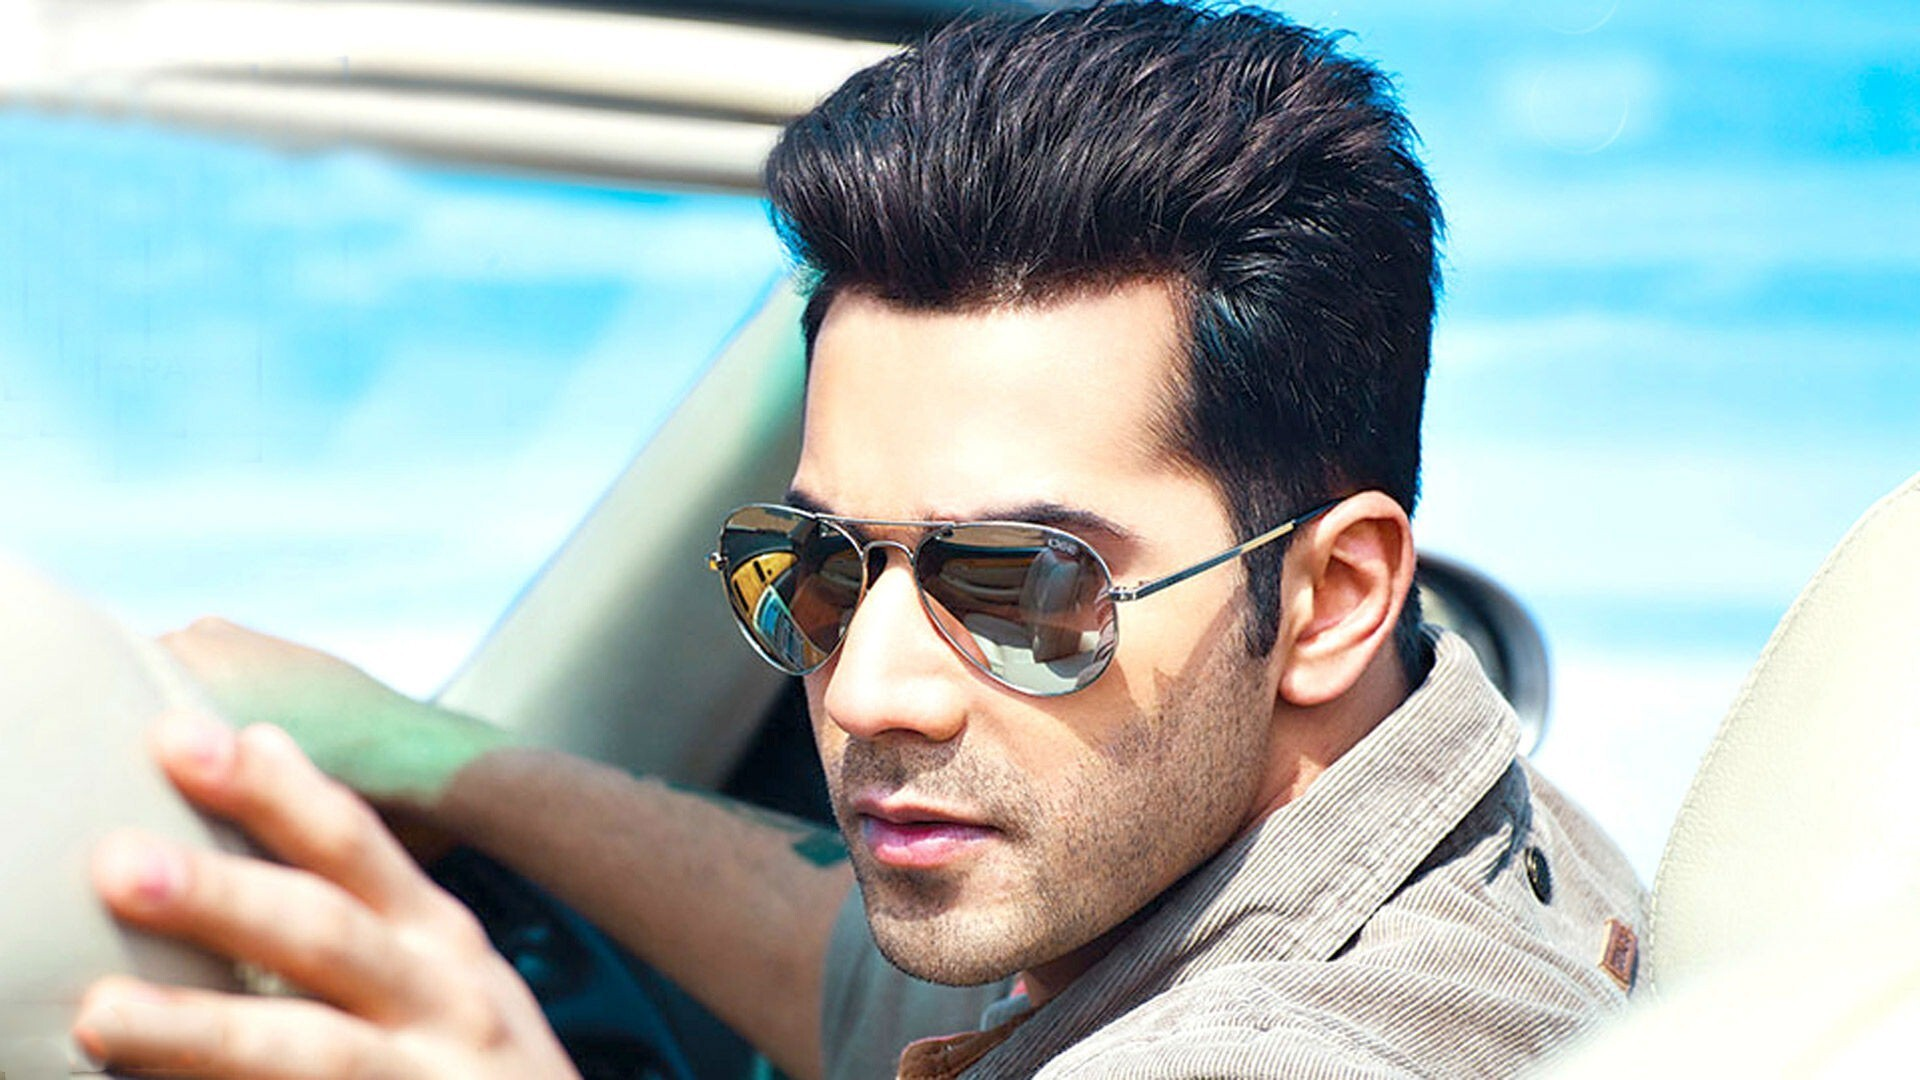 Varun Dhawan Bollywood Actor Hd Wallpaper Hd Wallpapers